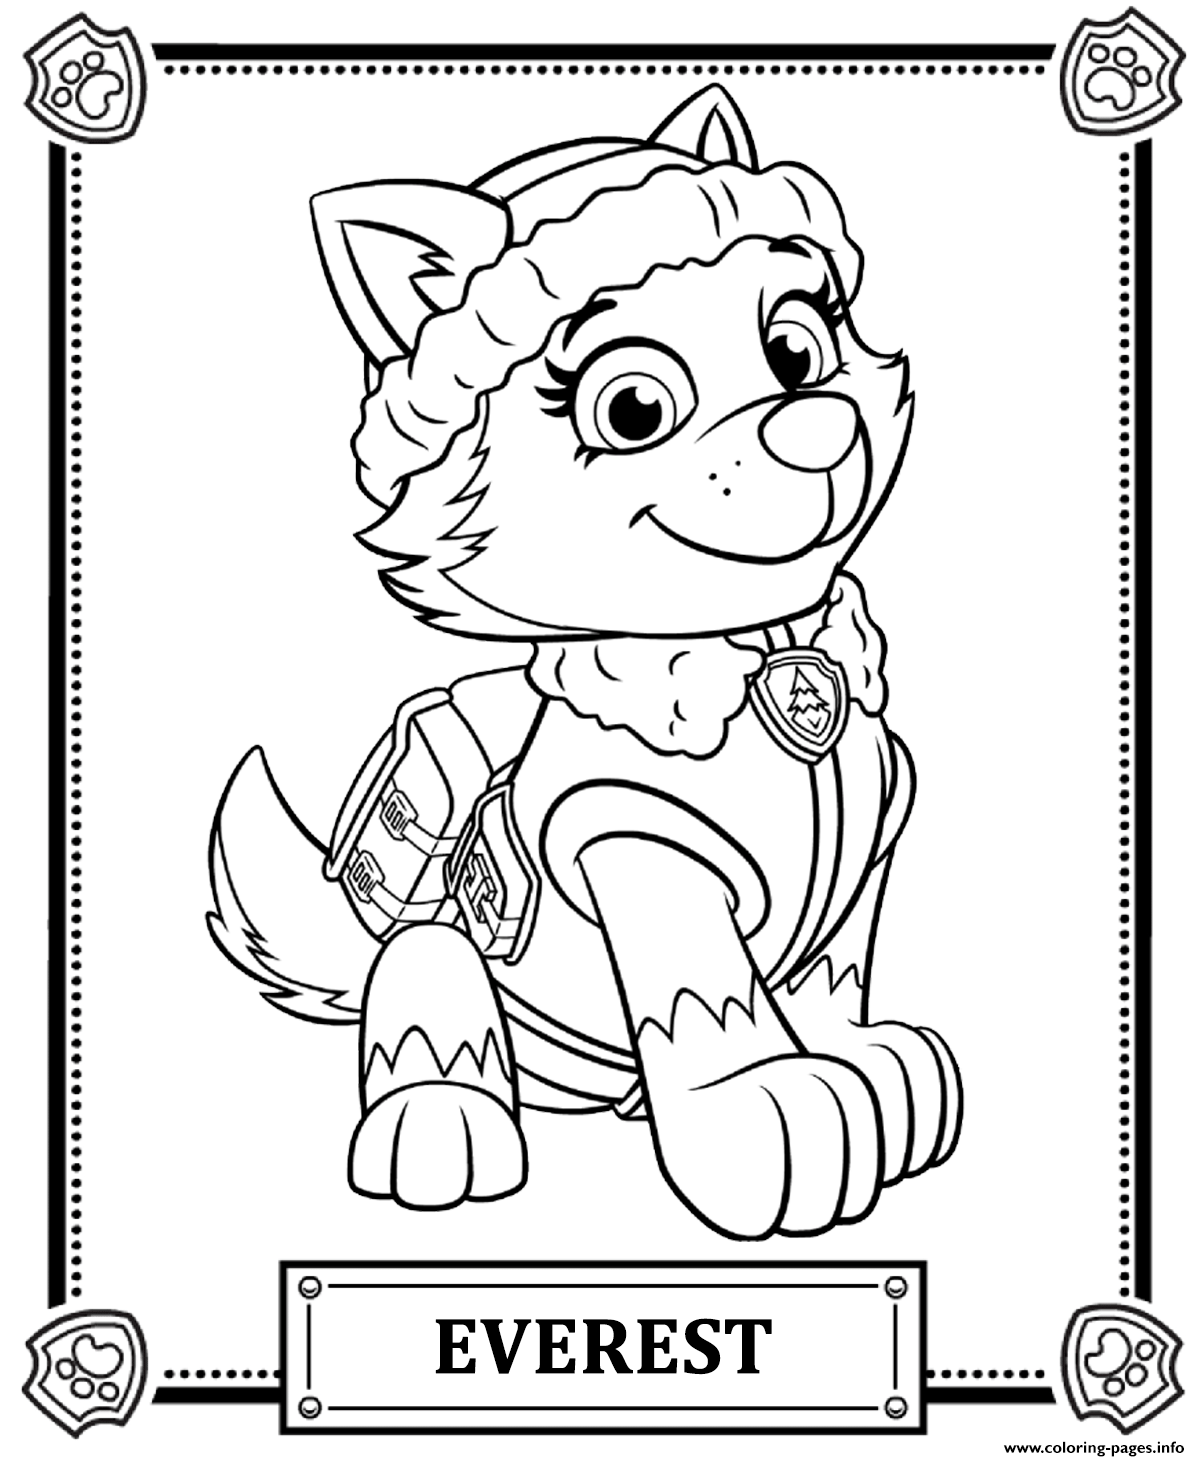 Print paw patrol everest coloring pages Brandon 39 s 3rd